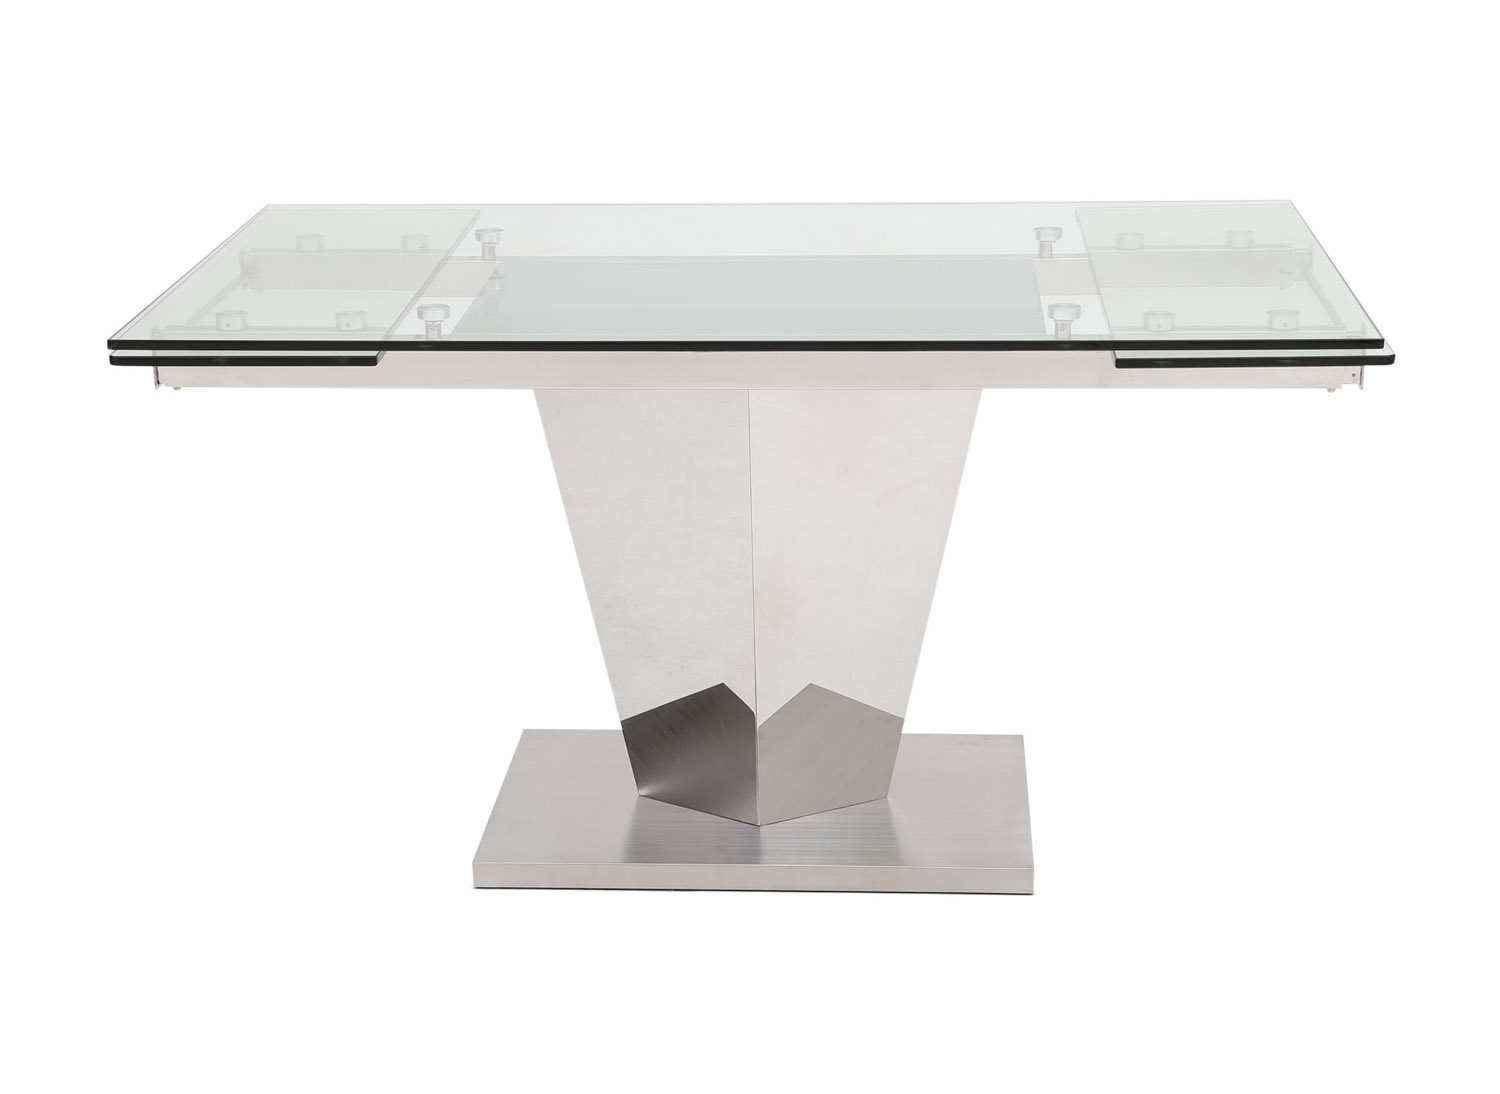 https://www.firstfurniture.co.uk/pub/media/catalog/product/i/s/isabella_ext_dining_table_closed_4.jpg